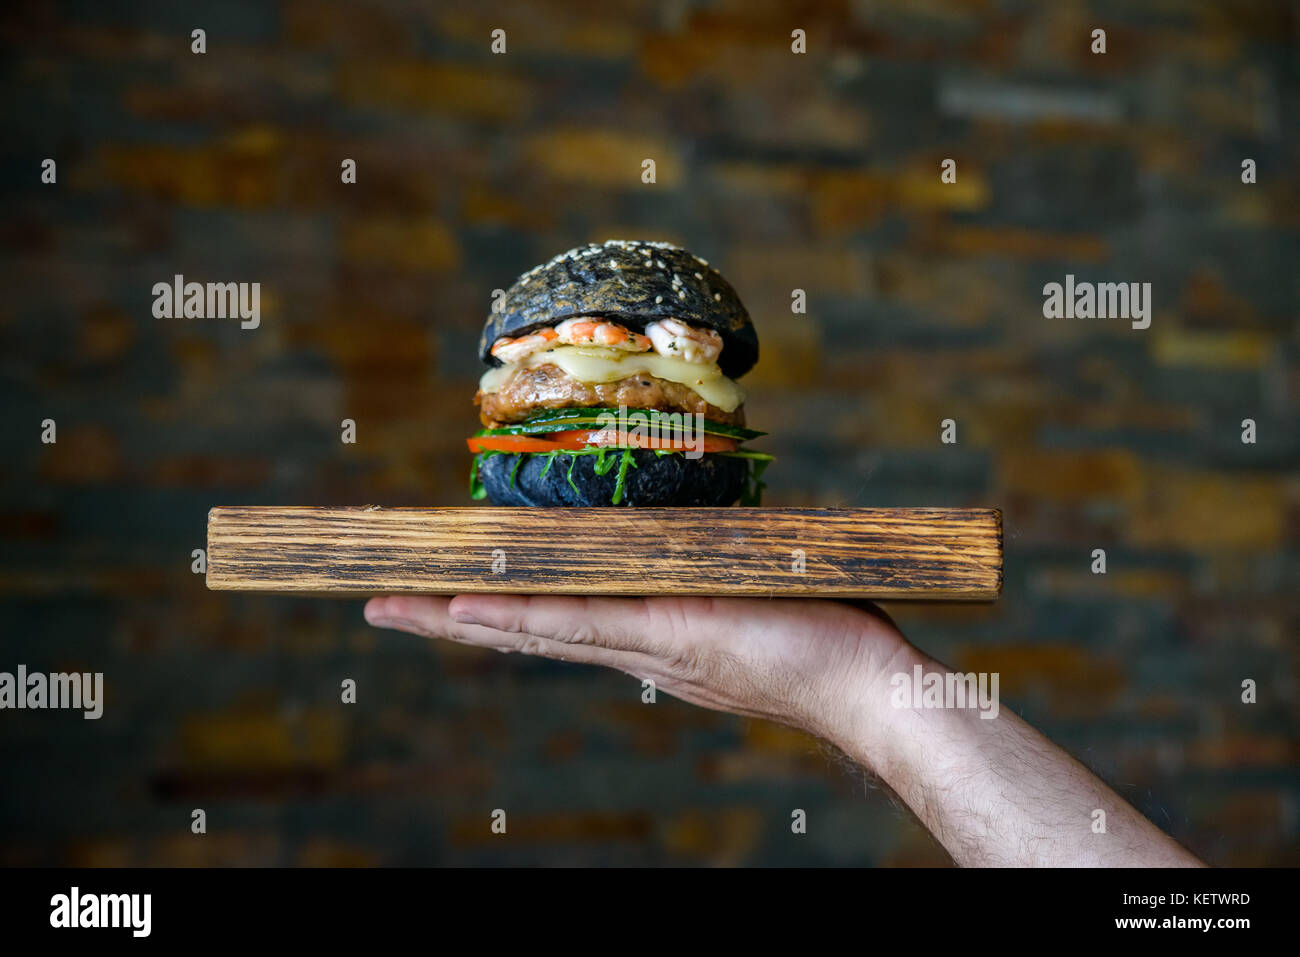 Waiter holds burger with prawns on wooden board - Stock Image